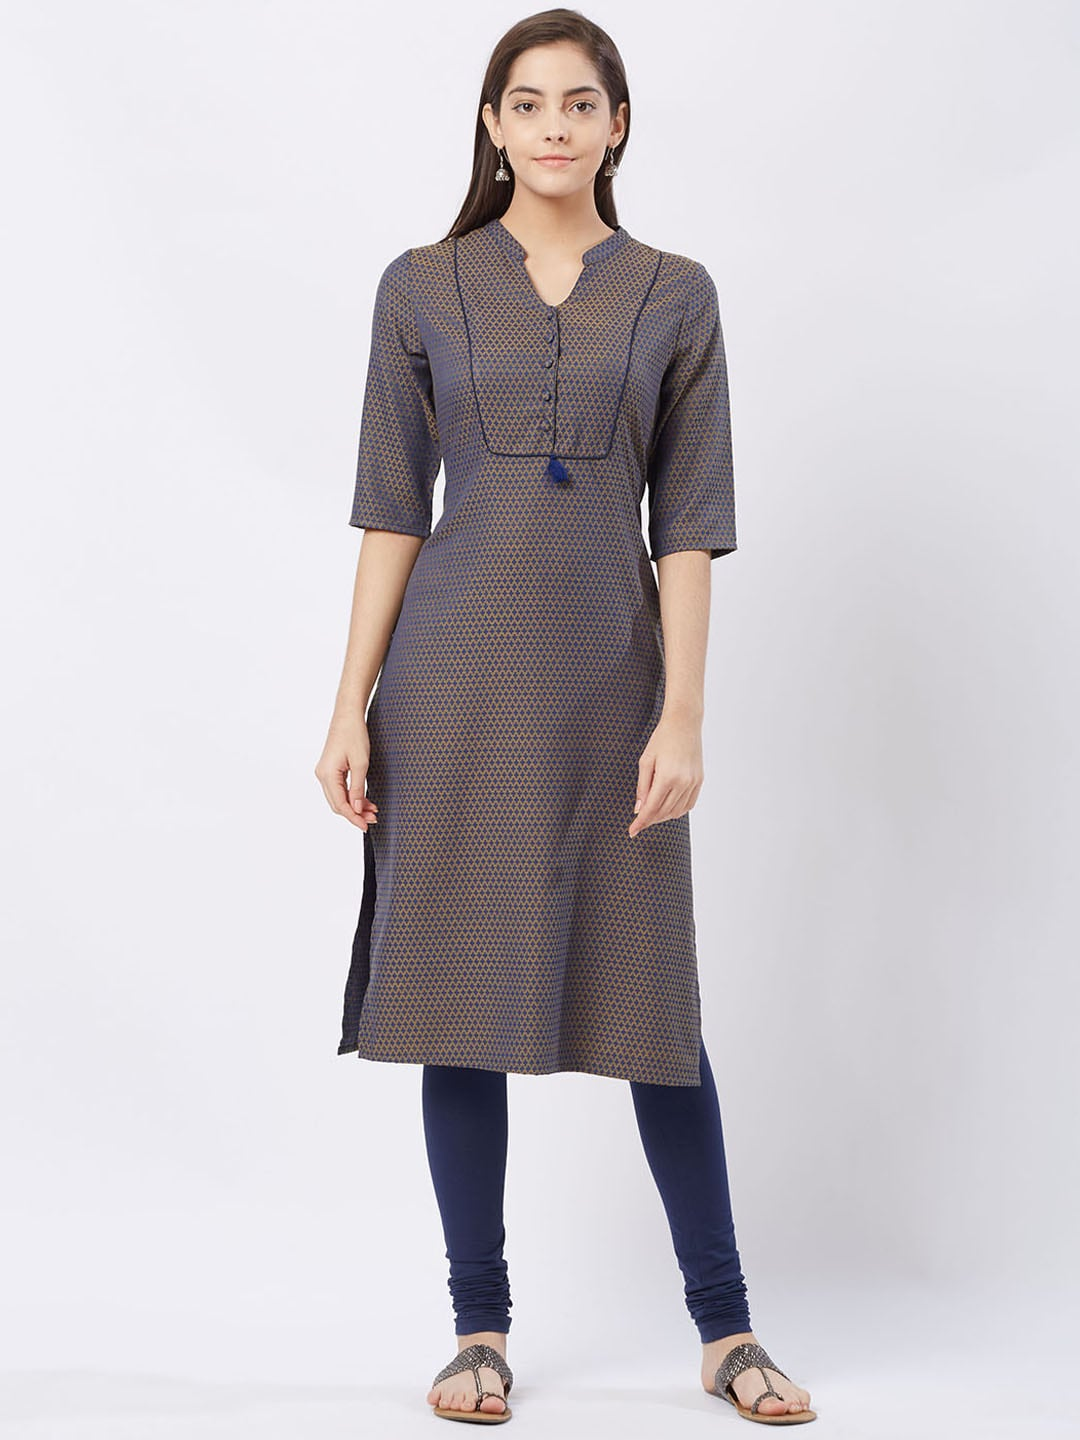 bcf5793f95a Kurtis Online - Buy Designer Kurtis   Suits for Women - Myntra